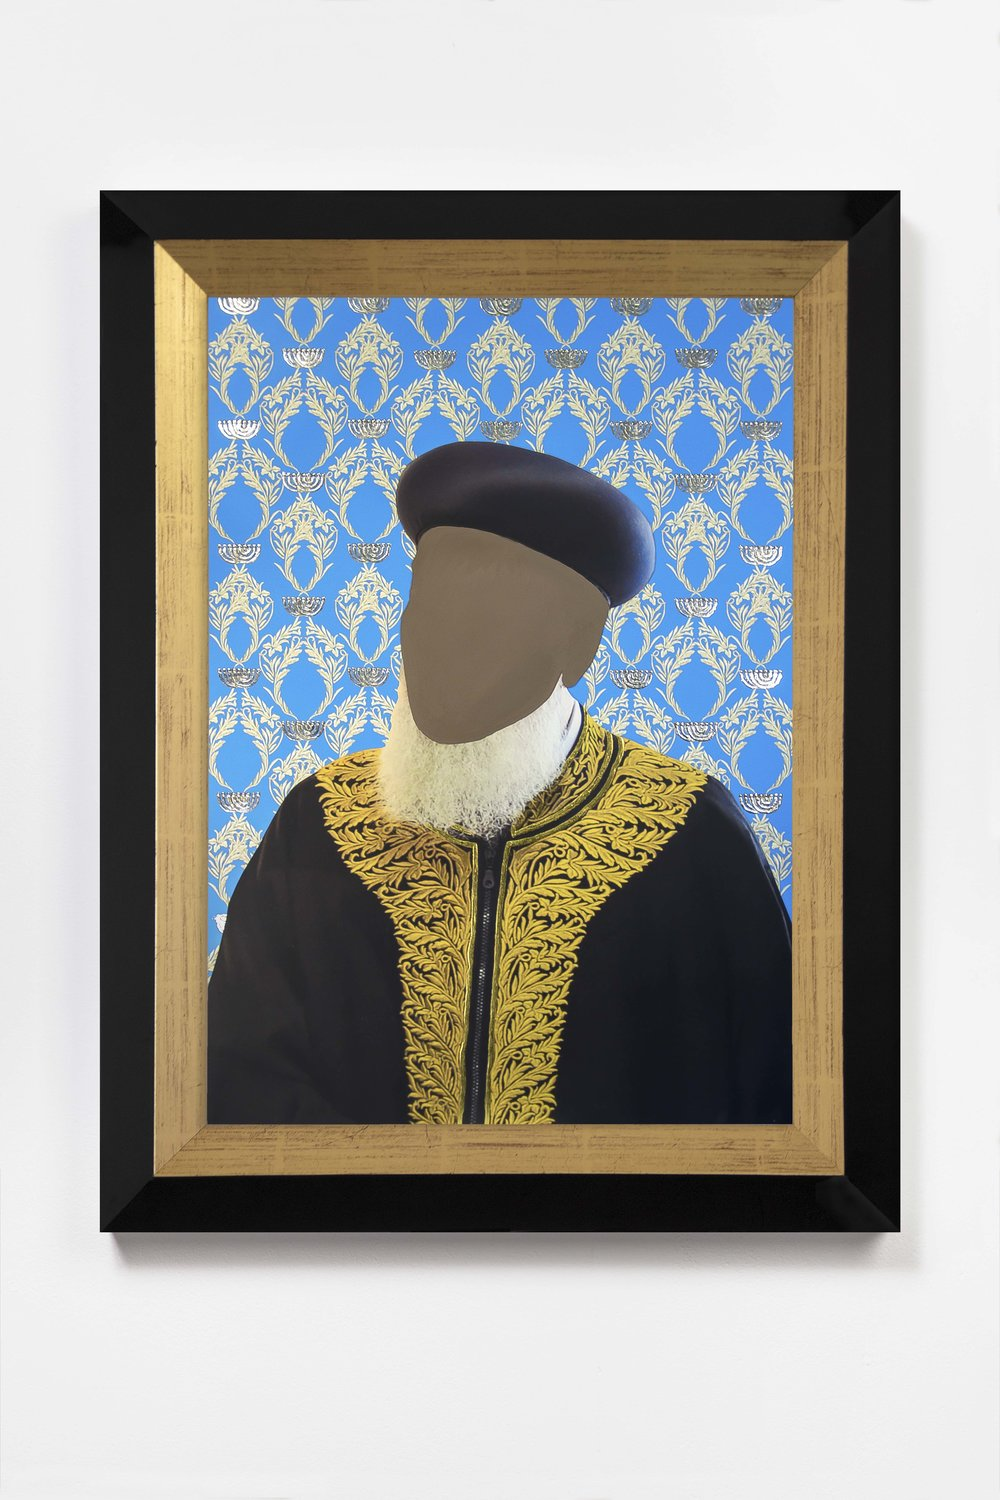 Encounter, Cerulean  2018 © Nicola Green  Painting, on giclée with hand applied 24k gold and silver leaf, 308gsm Hahnemuhle   H52 x W40 cm   £5,900 including frame and VAT   H64 x W47 cm   £8,500 including frame and VAT